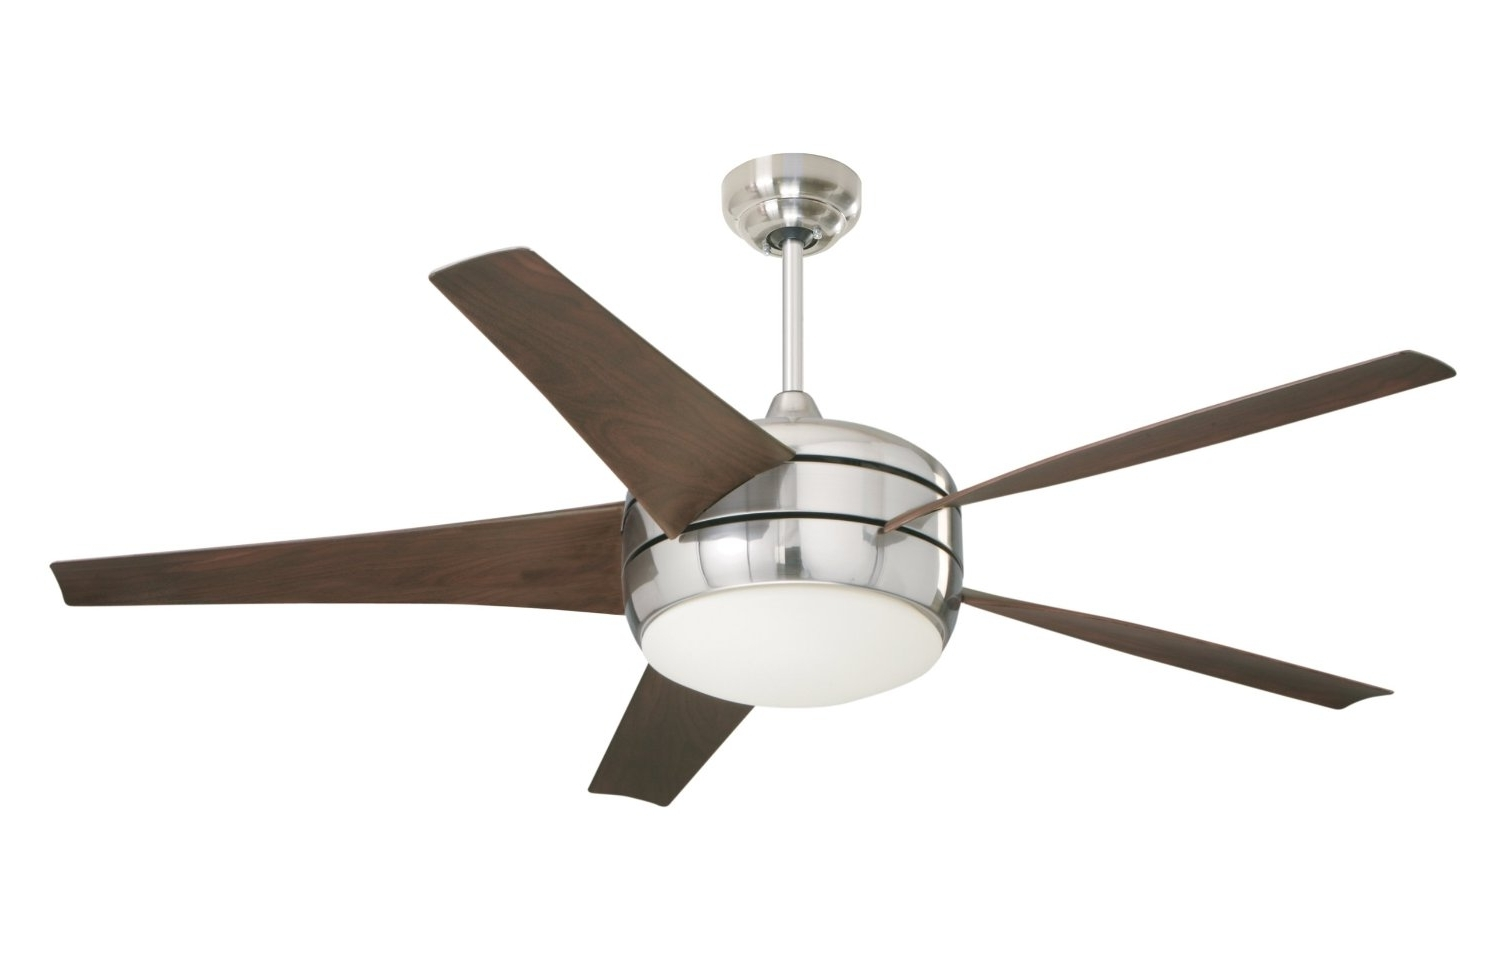 Best Ceiling Fans Reviews, Buying Guide And Comparison 2018 Throughout Preferred Outdoor Ceiling Fans With High Cfm (Gallery 18 of 20)